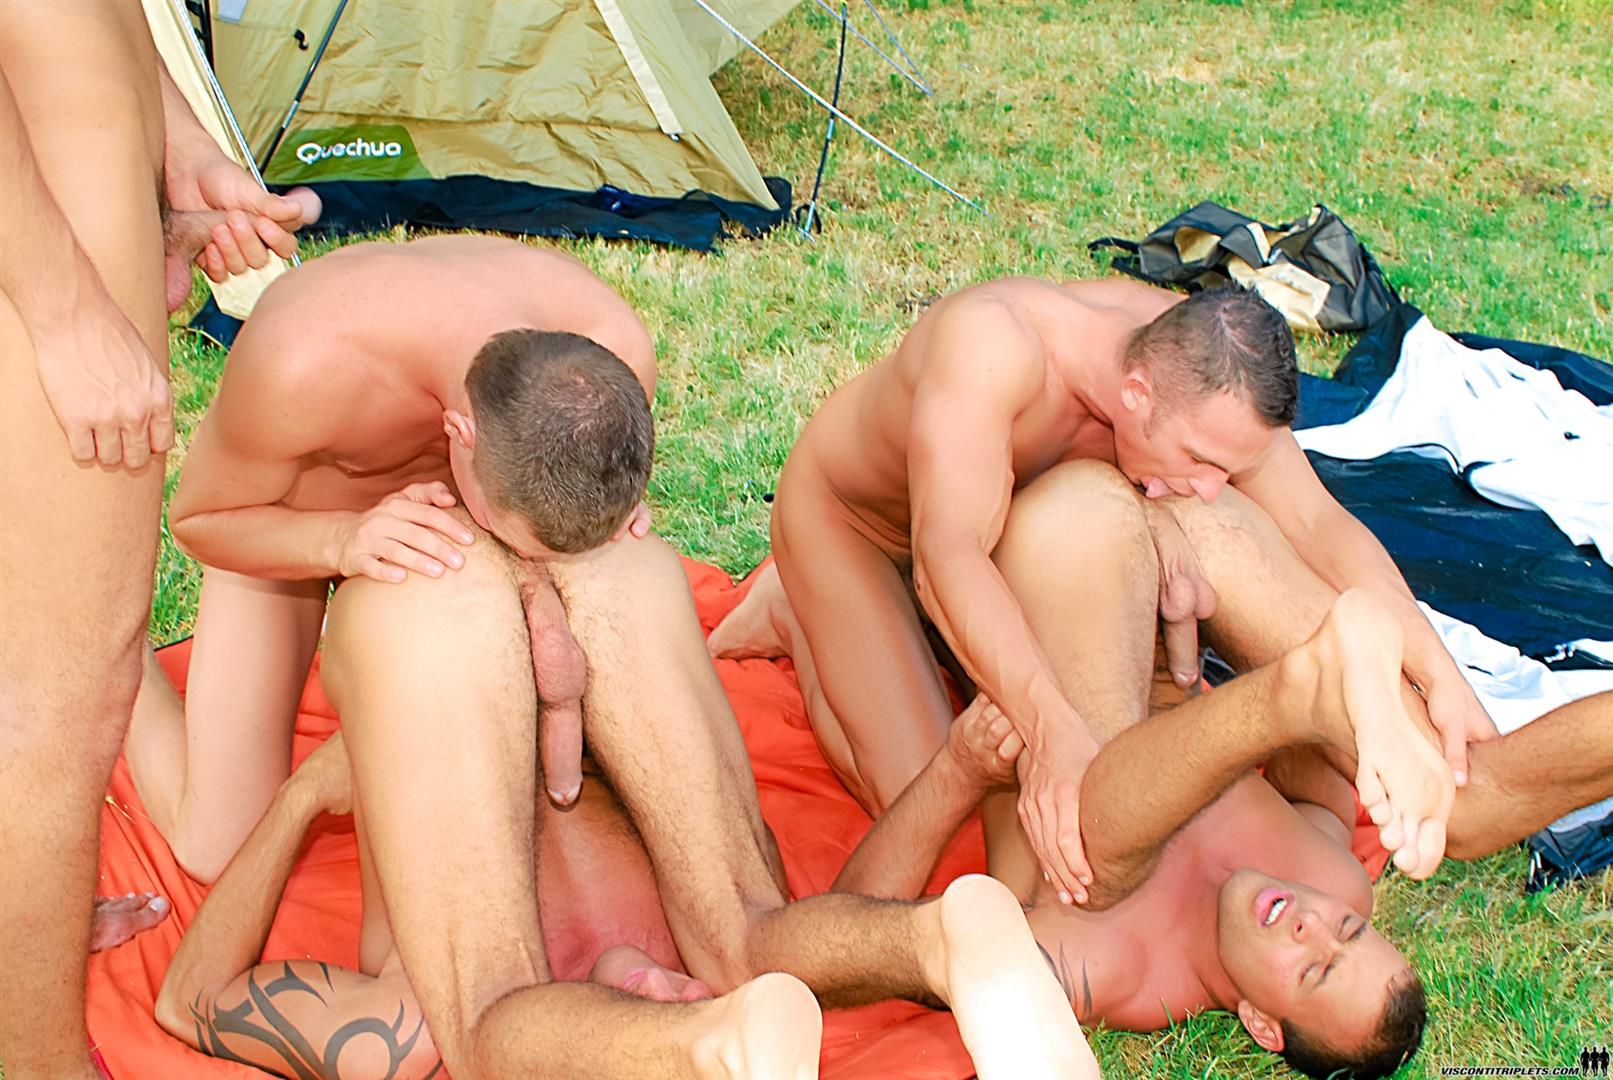 Visconti Triplets Jason Visconti Jimmy Visconti Joey Visconti Giuseppe Pardi Fucking During A Camping Trip Amateur Gay Porn 12 Visconti Triplets Tag Team Some Muscle Ass While Camping